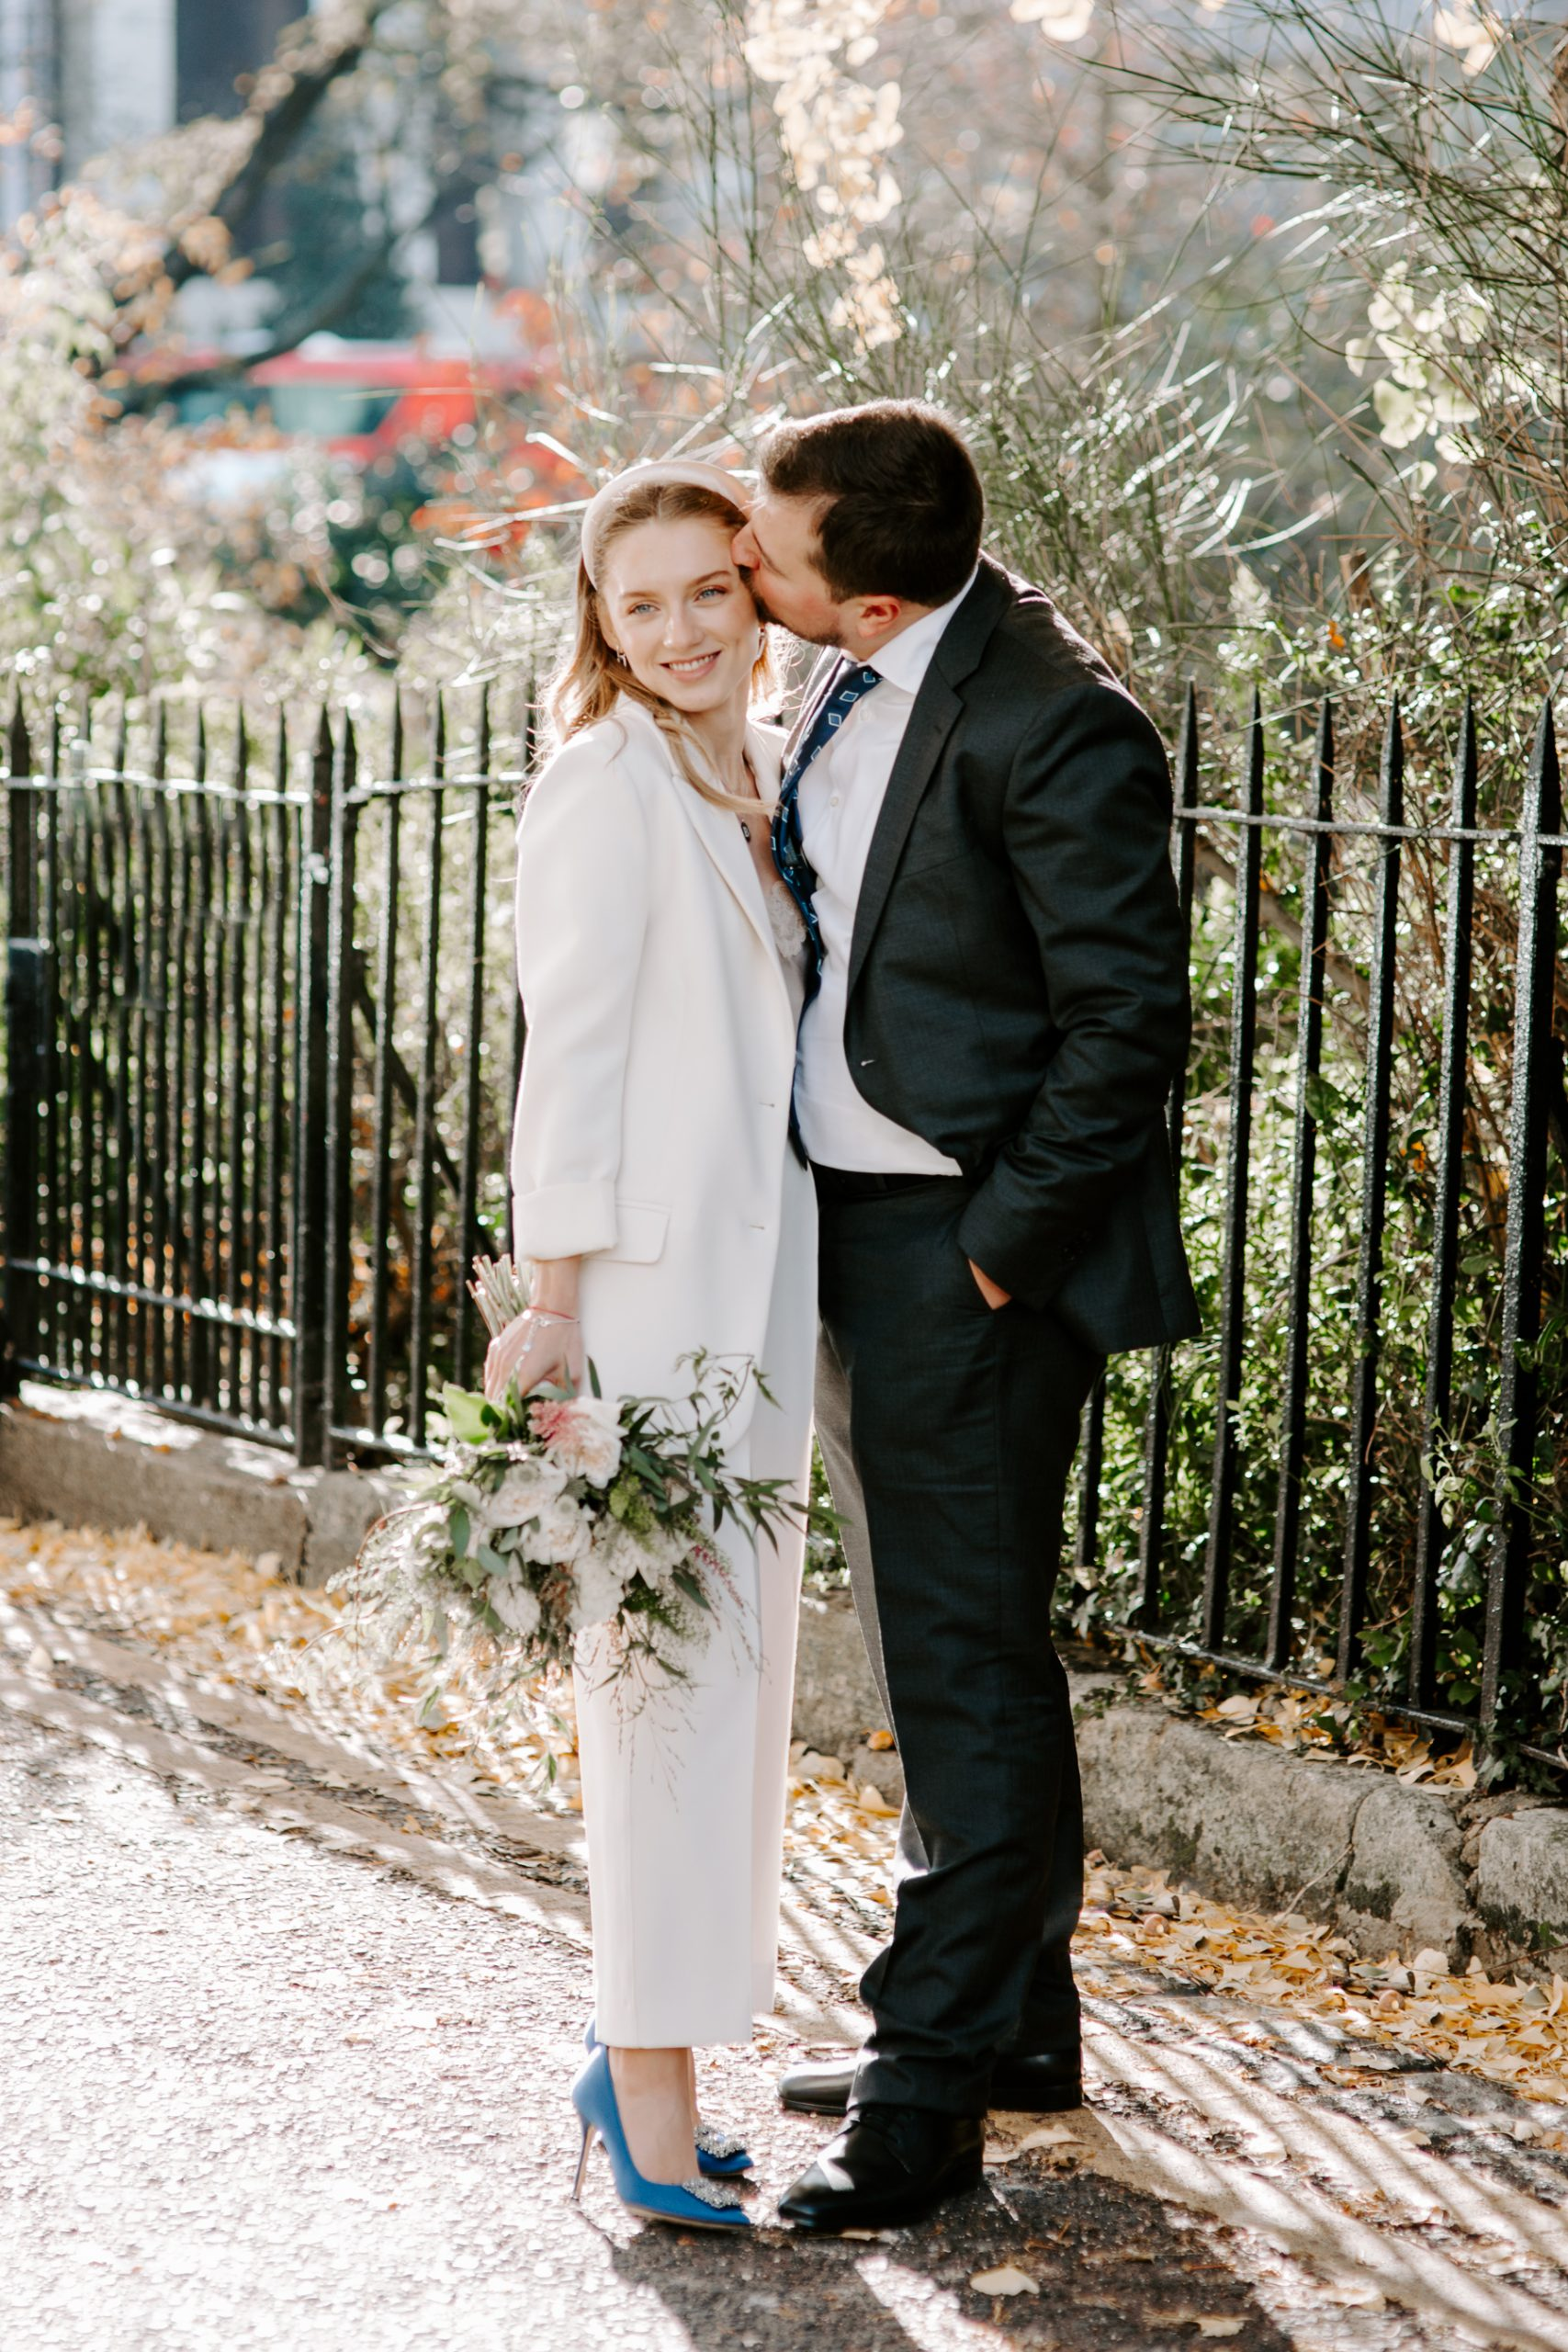 Bride and groom in Chelsea after town hall wedding